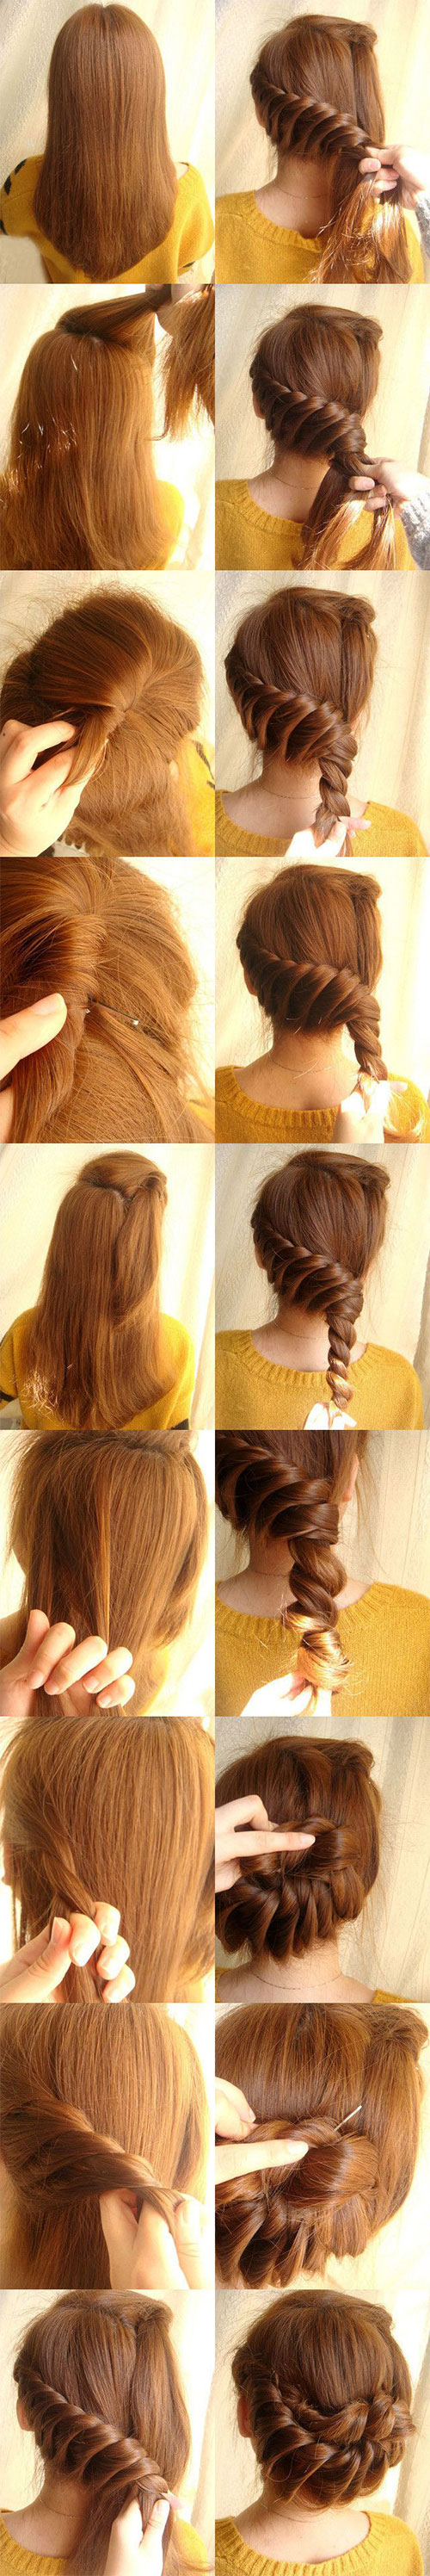 20-Easy-Step-By-Step-Summer-Braids-Style-Tutorials-For-Beginners-2015-16